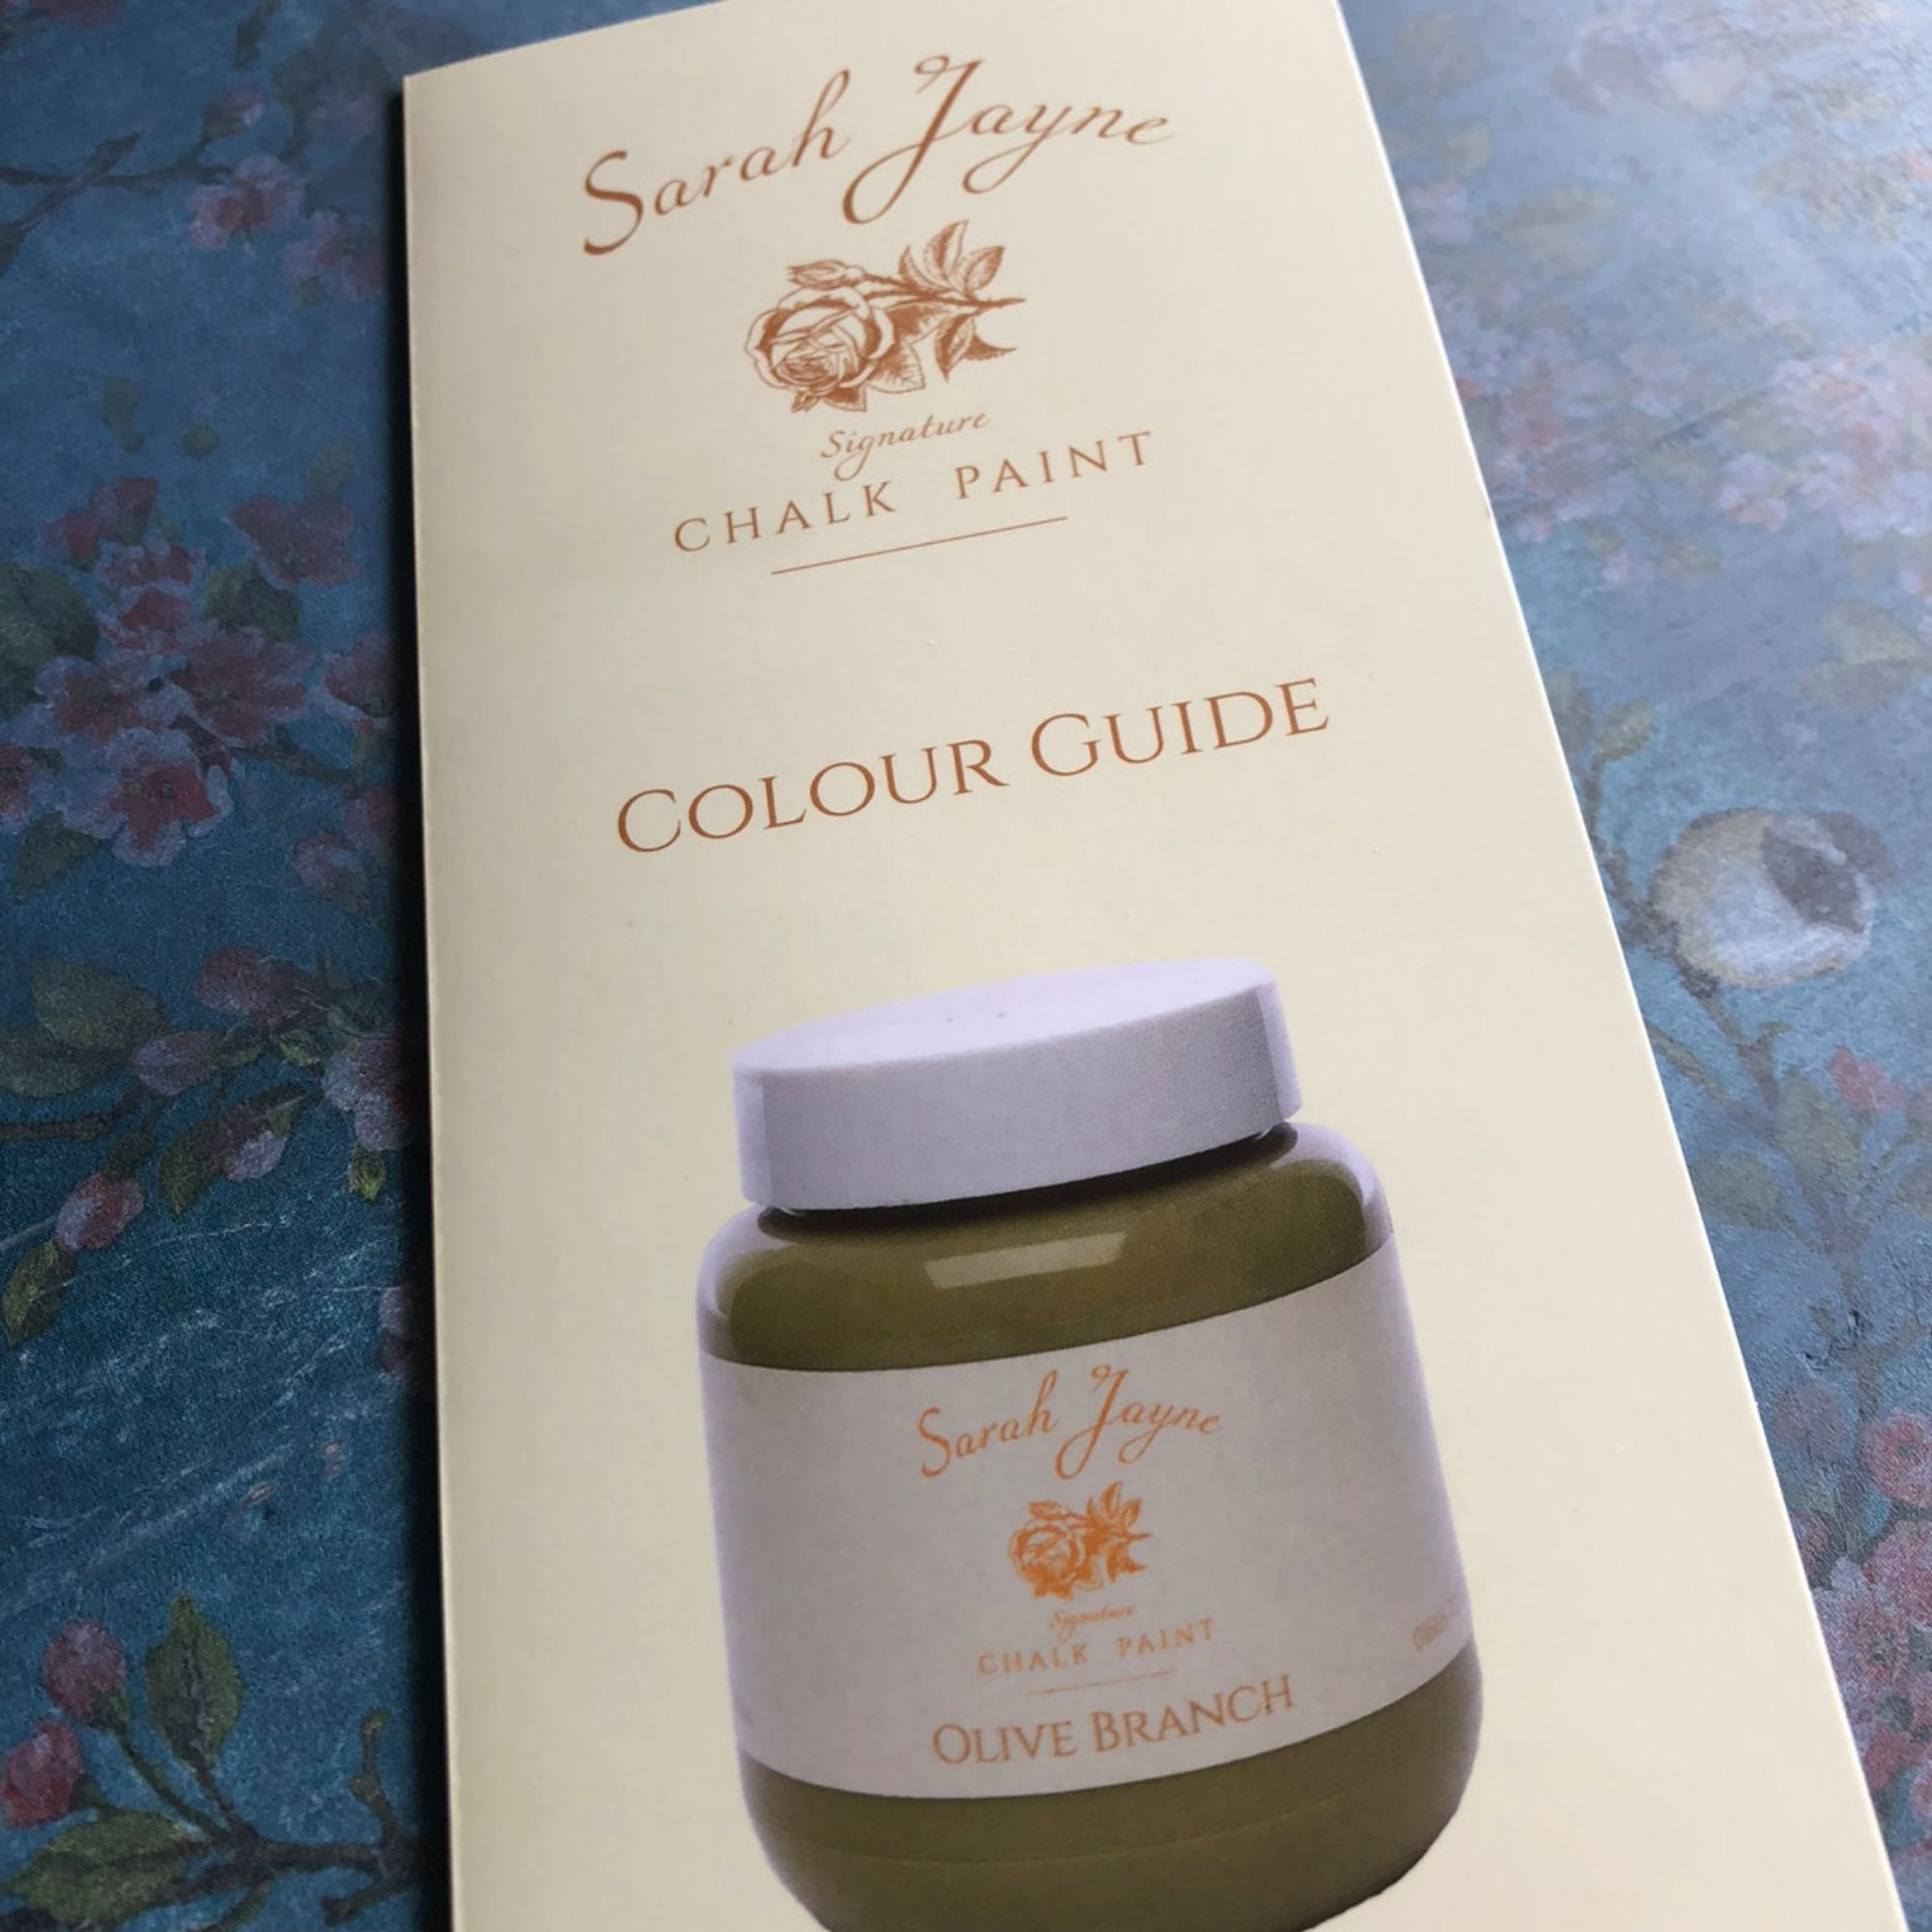 sarah-jayne-chalk-paint-colour-guide.jpg